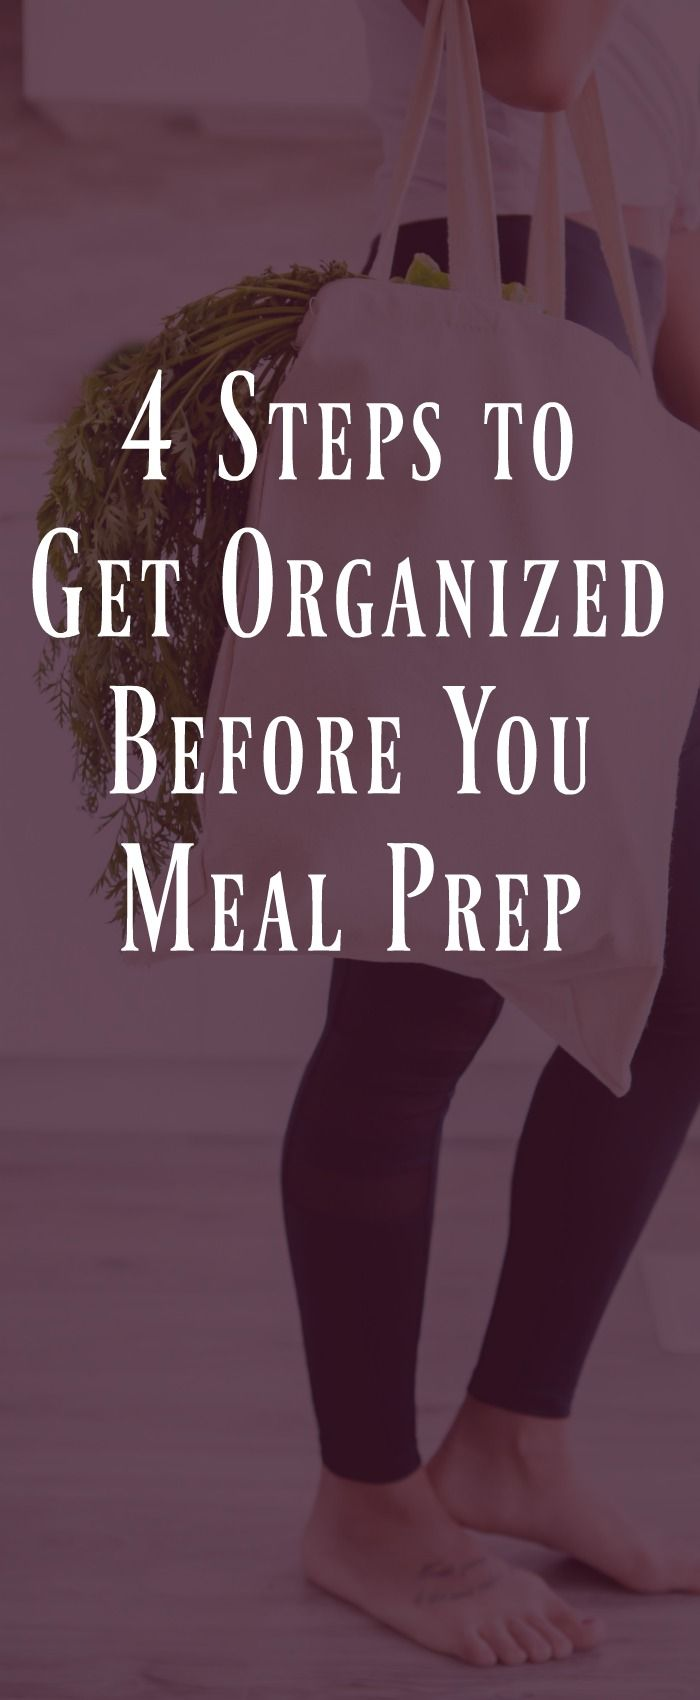 This post is by OYS writer Sara Letsch. She's been an OYS reader for years and I'm thrilled to have her writing for us. Sara is a foodie working to help others eat healthier through meal prep! She is also a fitness enthusiast who shares her experiences from her 100+ lb weight loss journey. You …